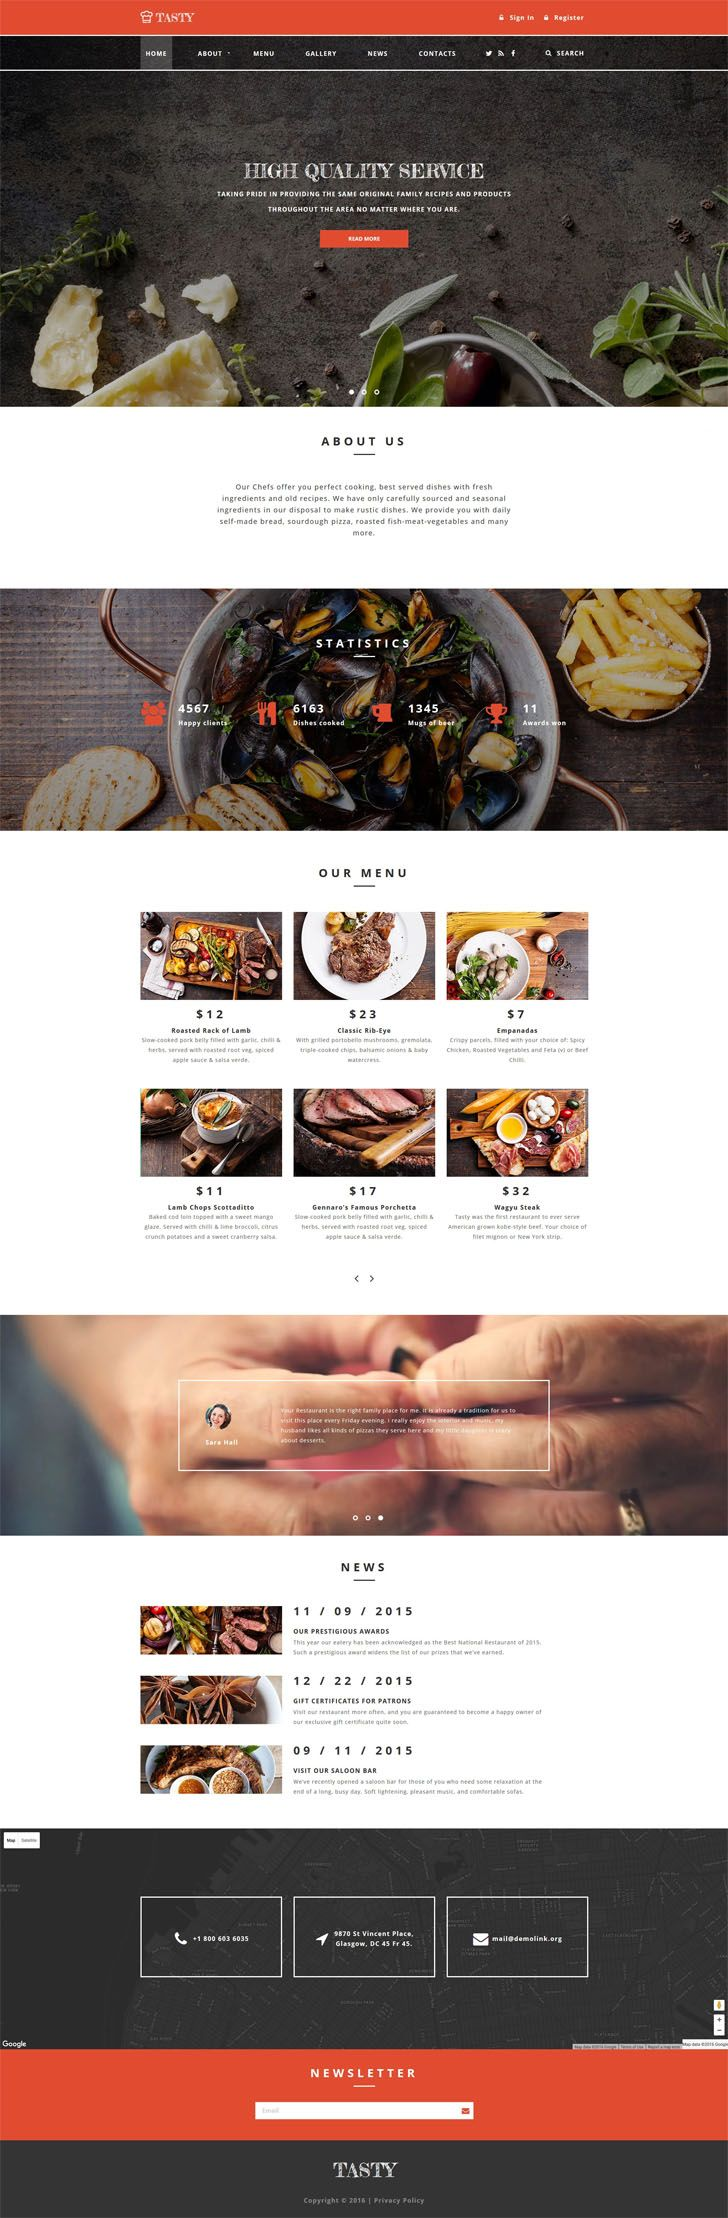 #Tasty & #Cafe and #Restaurant #Website #Template.The theme was developed for cafe and restaurant websites. Slider, Parallax effect and background video make the layout of Cafe and Restaurant Website Template really impressive. Chalk fonts are a brilliant addition to the general web page style. Main menu sticks to the top of the page as you start to scroll down, and stays there all the time while the visitor is on the site. Restaurant menu is presented together with prices, which makes the…